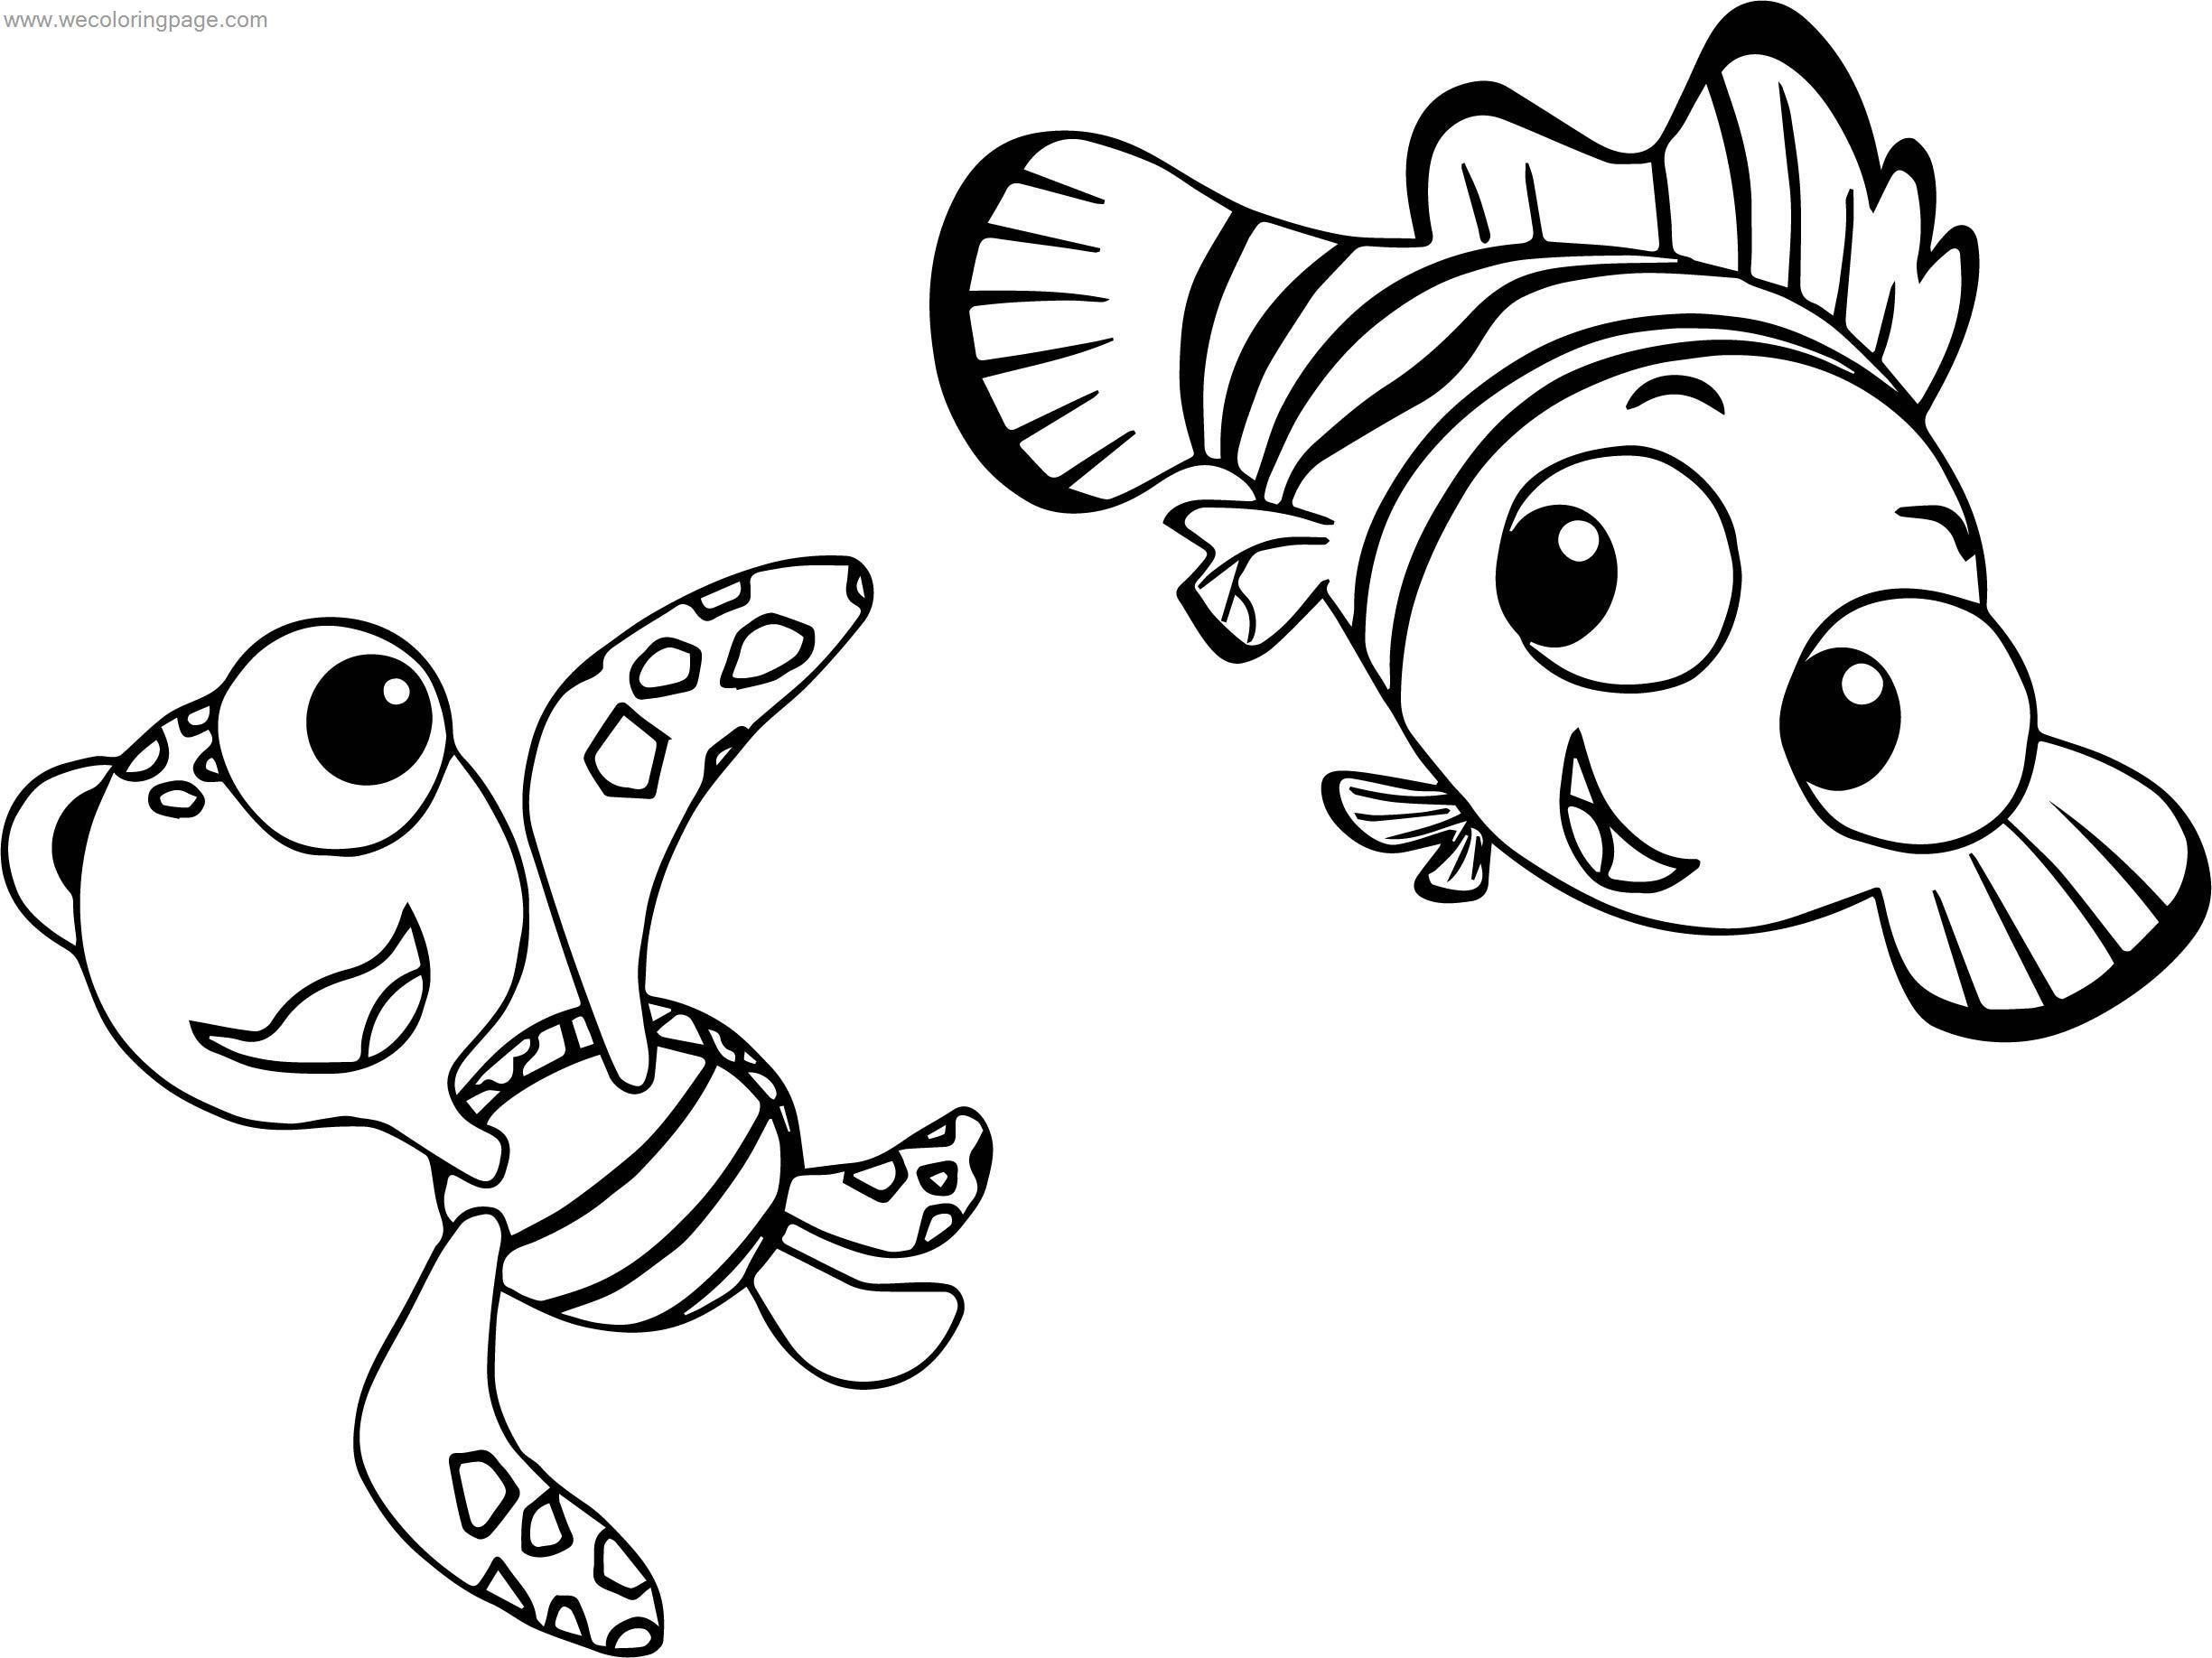 Disney Finding Nemo Squirt Turtle Coloring Pages ...